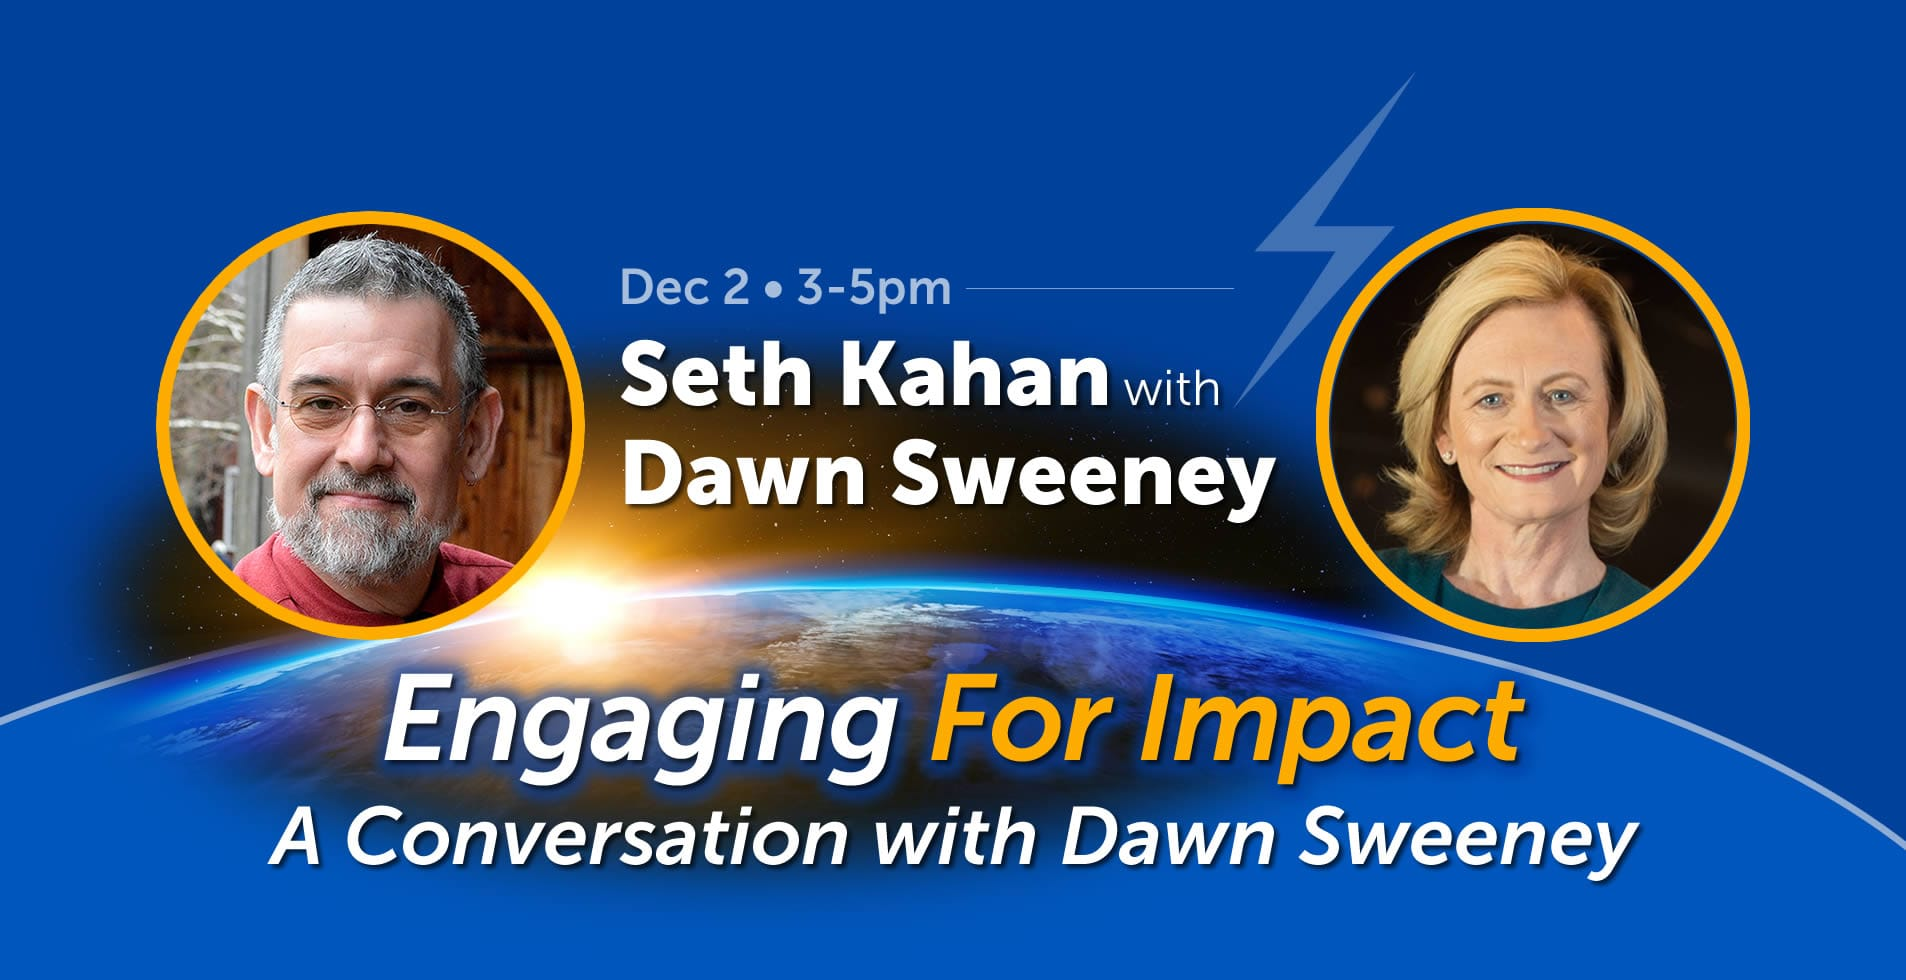 Seth & Dawn - Impact: A Conversation with Dawn Sweeney